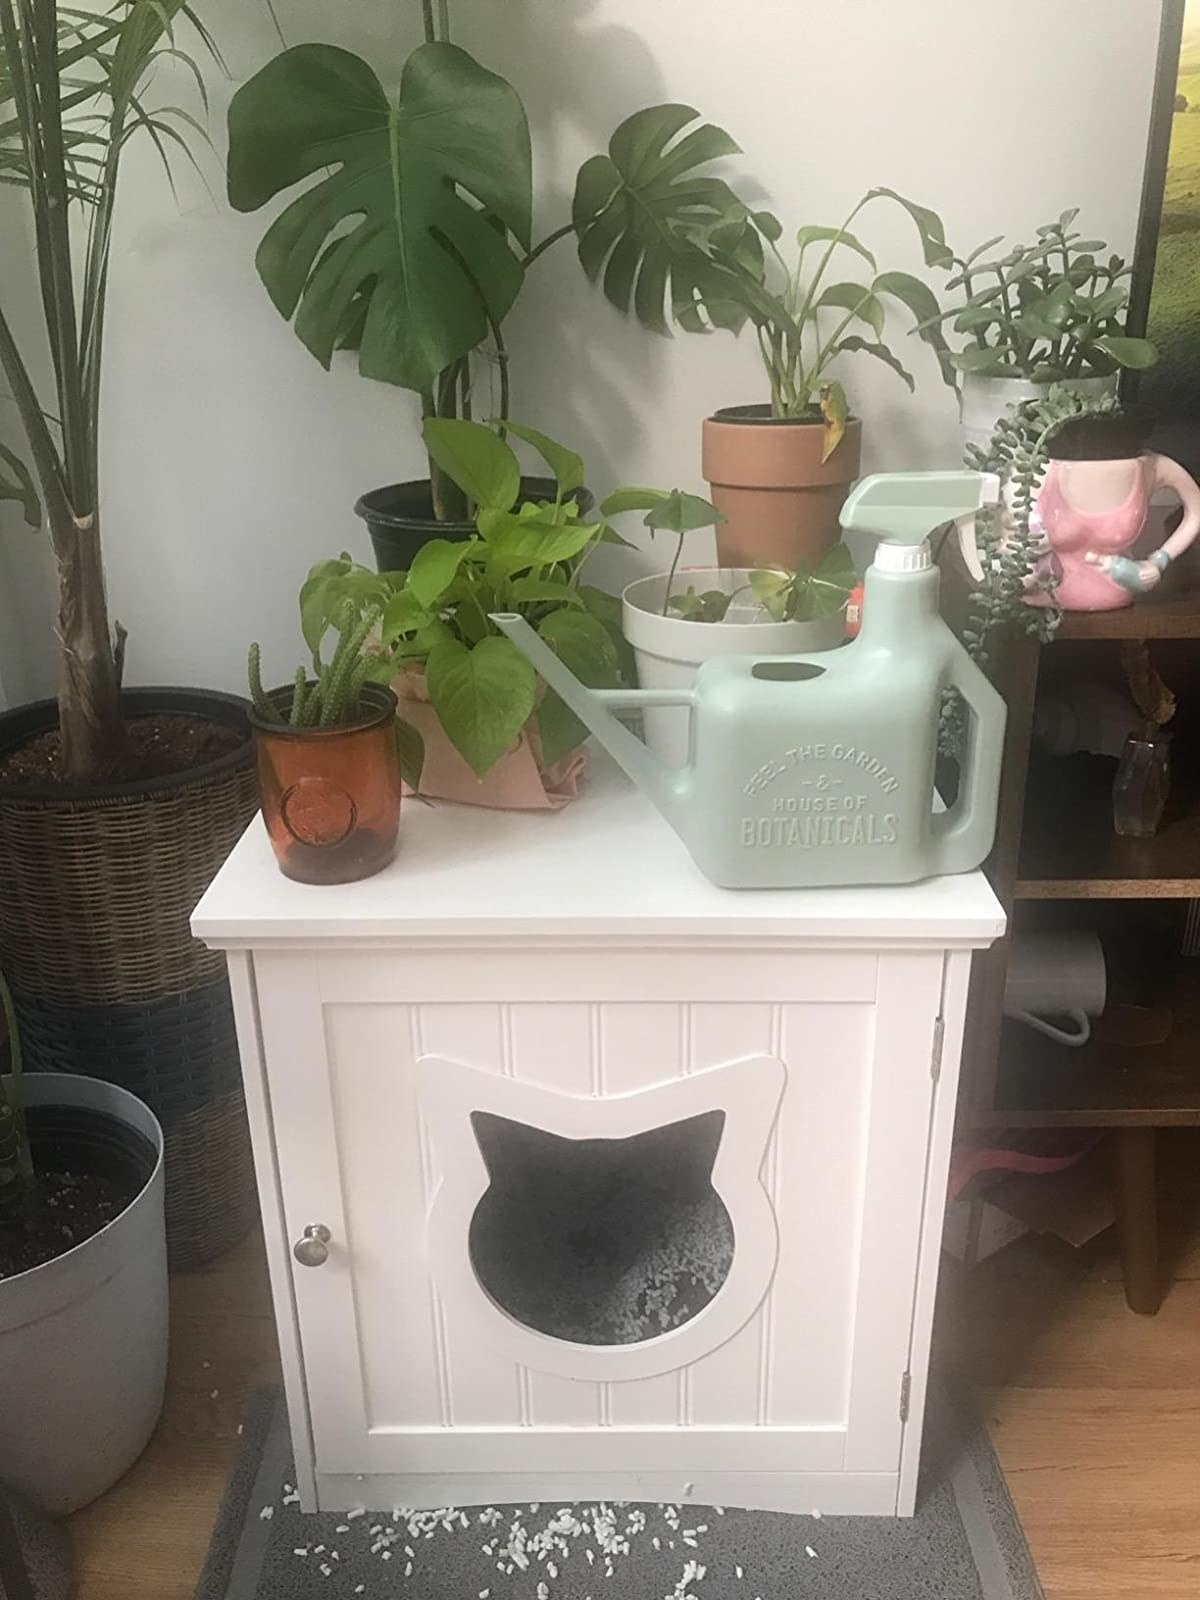 reviewer image of the cat house side table in a corner of a living room, housing plants on its surface